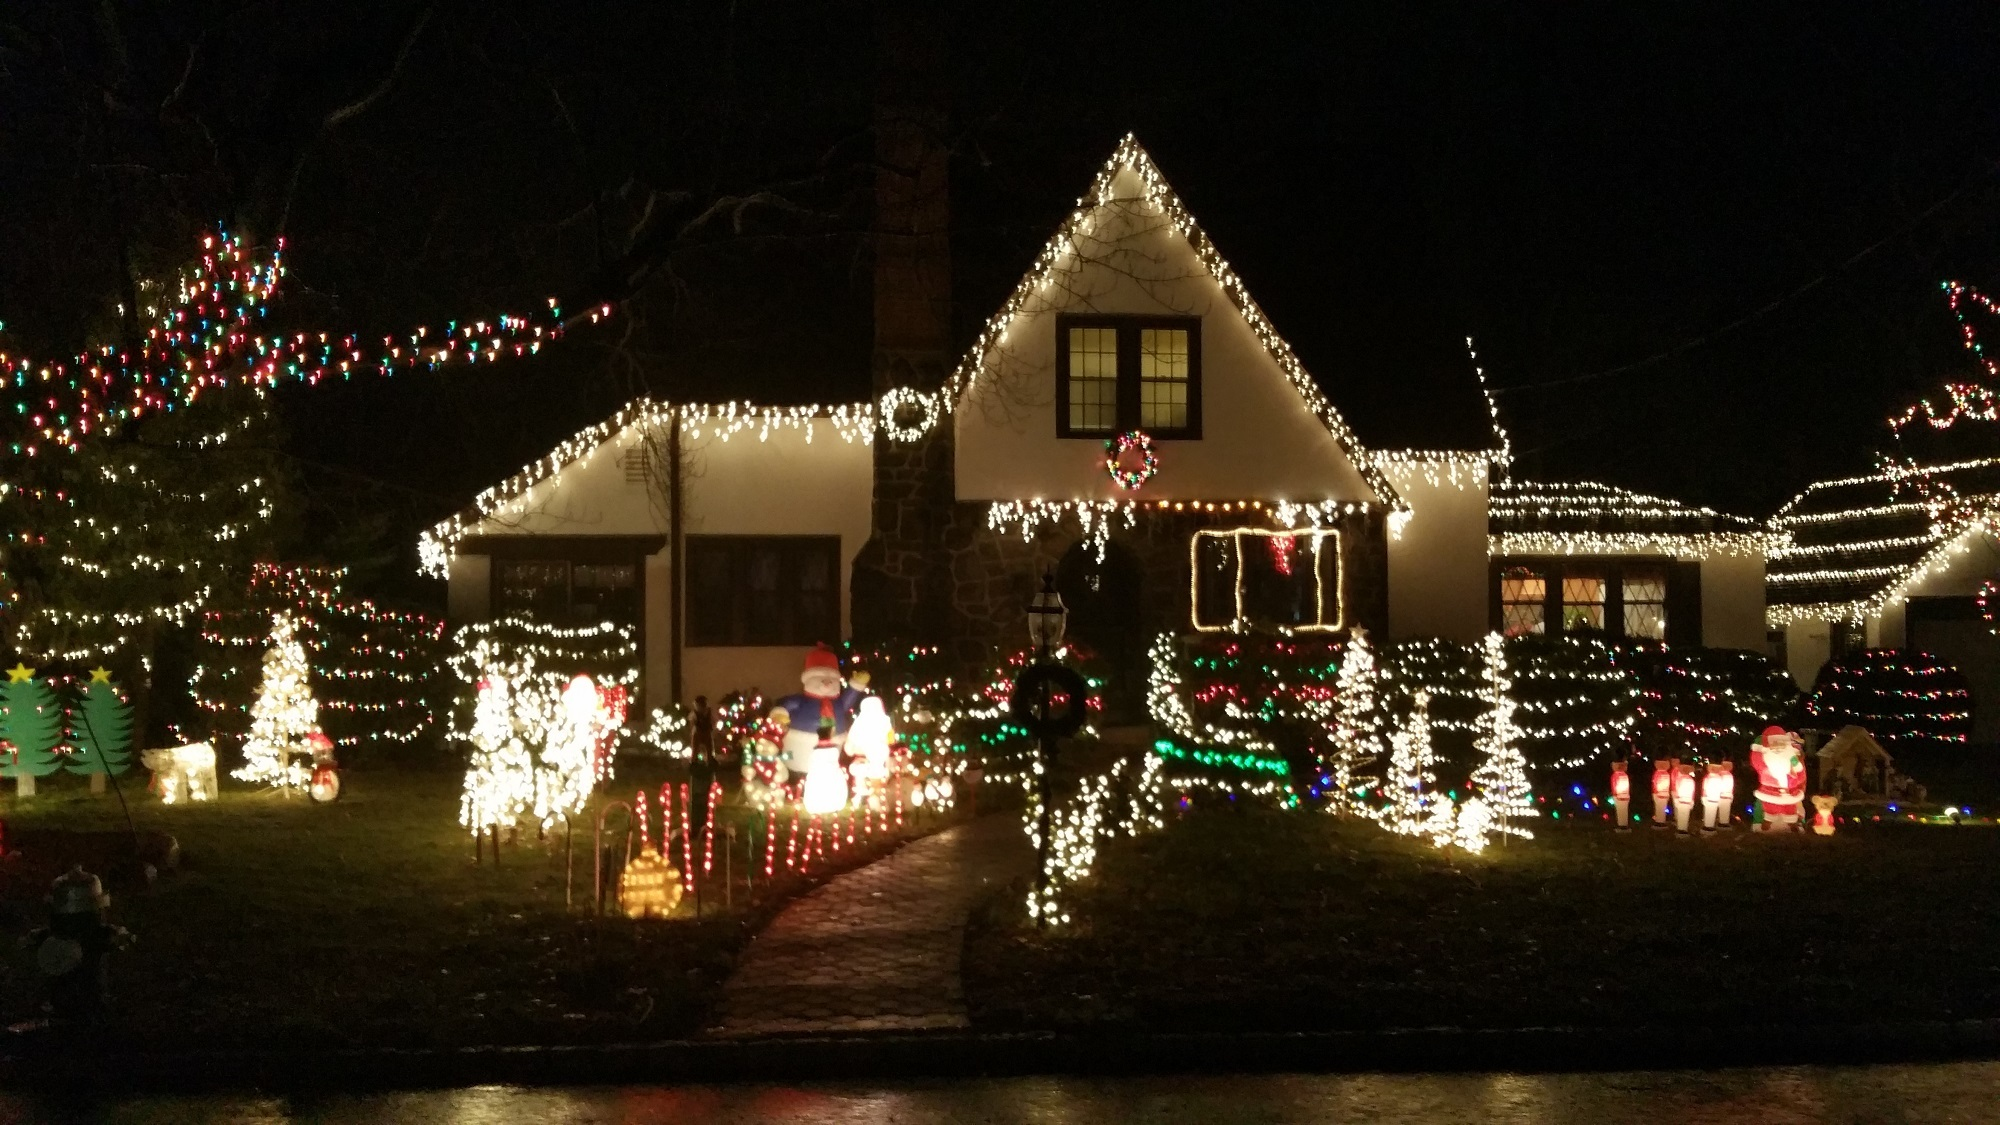 6b41d72c8b3392bc841d_Outdoor_Home_Decorating_Contest_2014_Frasso.jpg